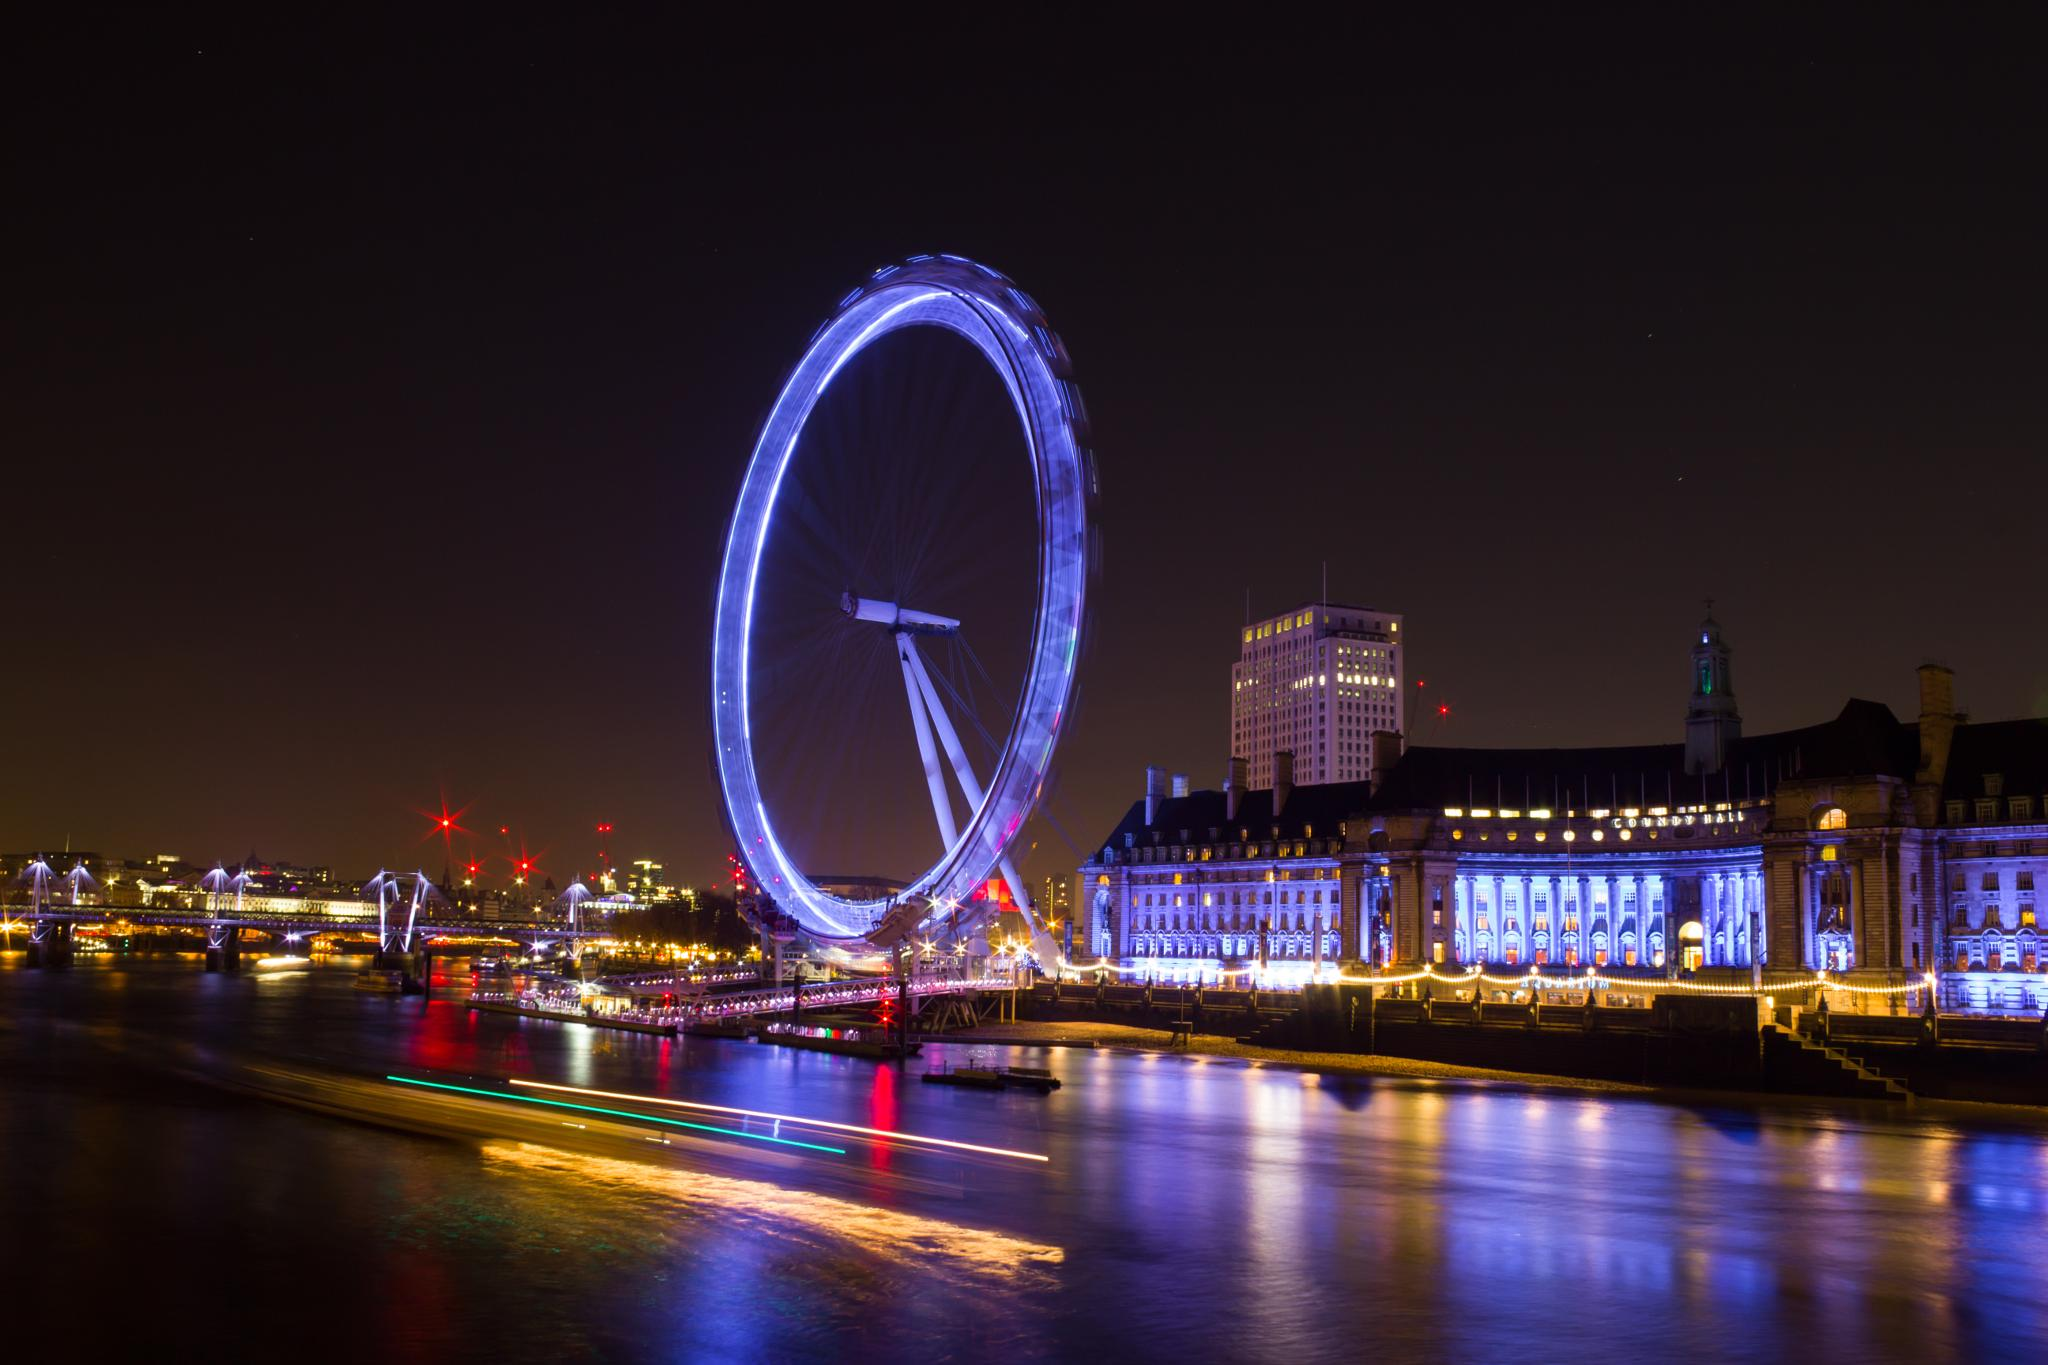 The eye of London6 by thomashaage